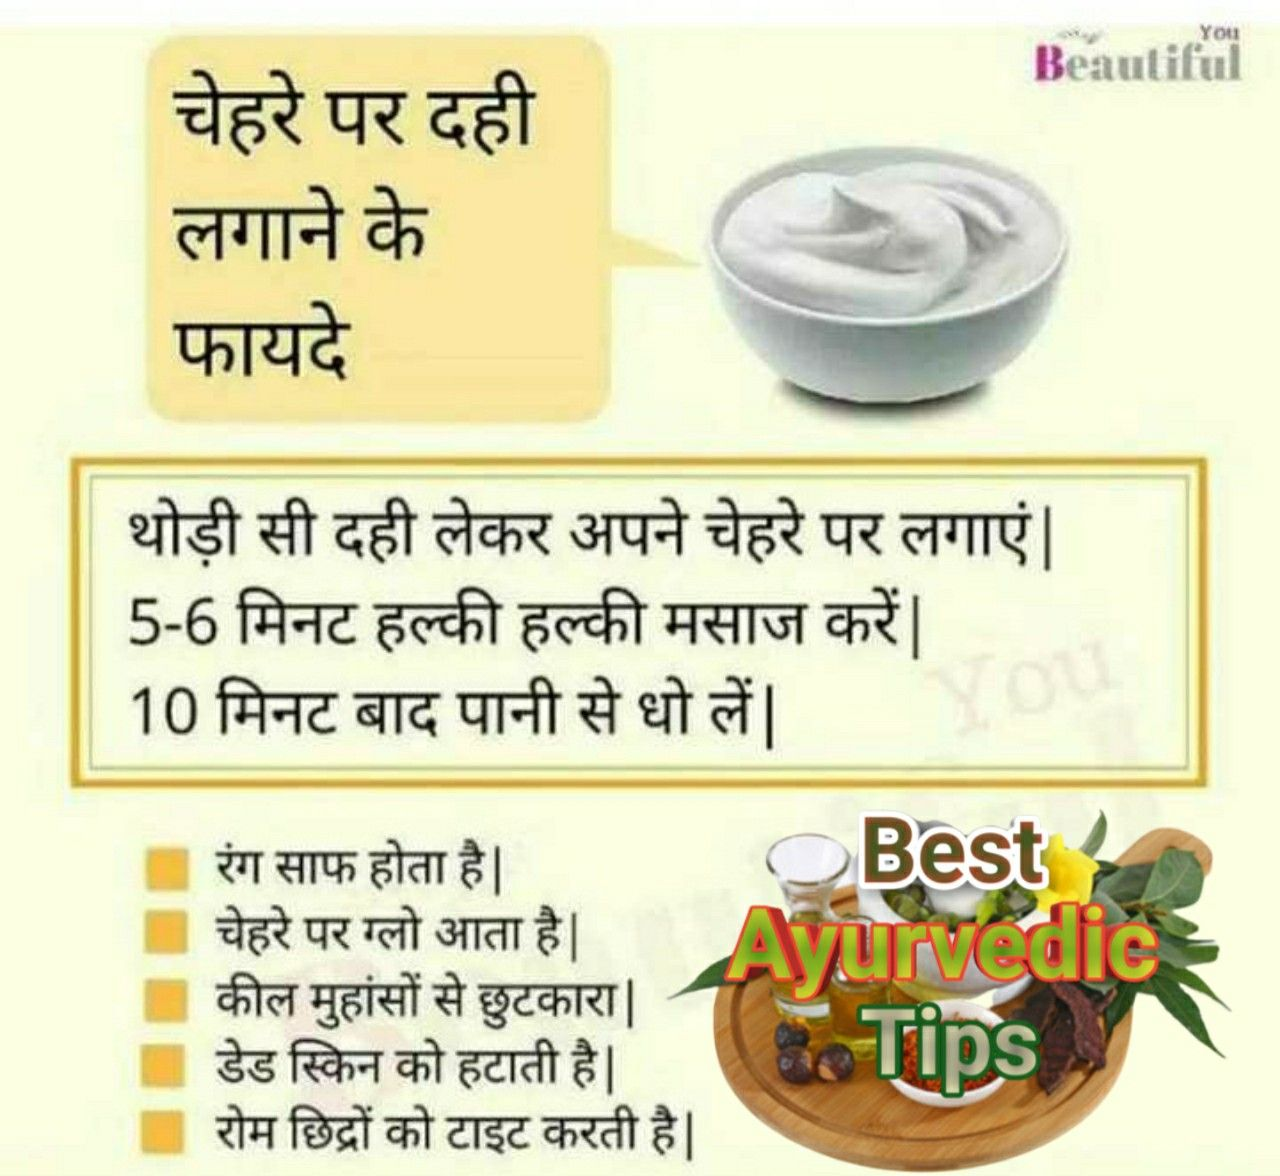 Best Ayurvedic Tips you Tube channel  Beauty tips for glowing